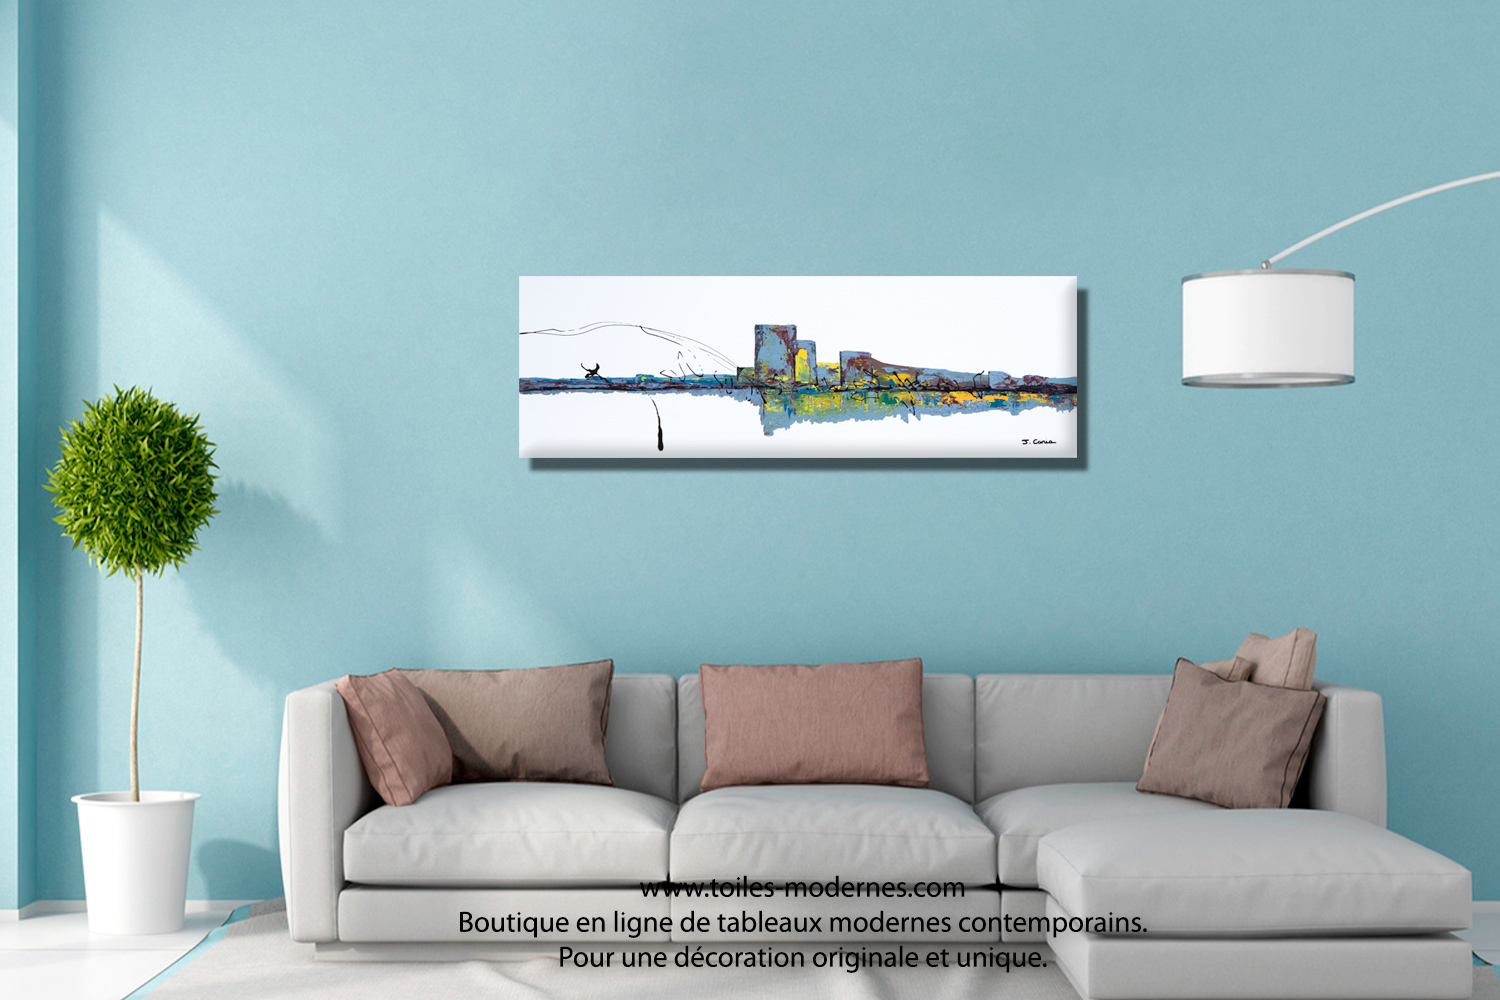 tableau blanc ville pure grand panoramique art abstrait d co murale haut de gamme. Black Bedroom Furniture Sets. Home Design Ideas